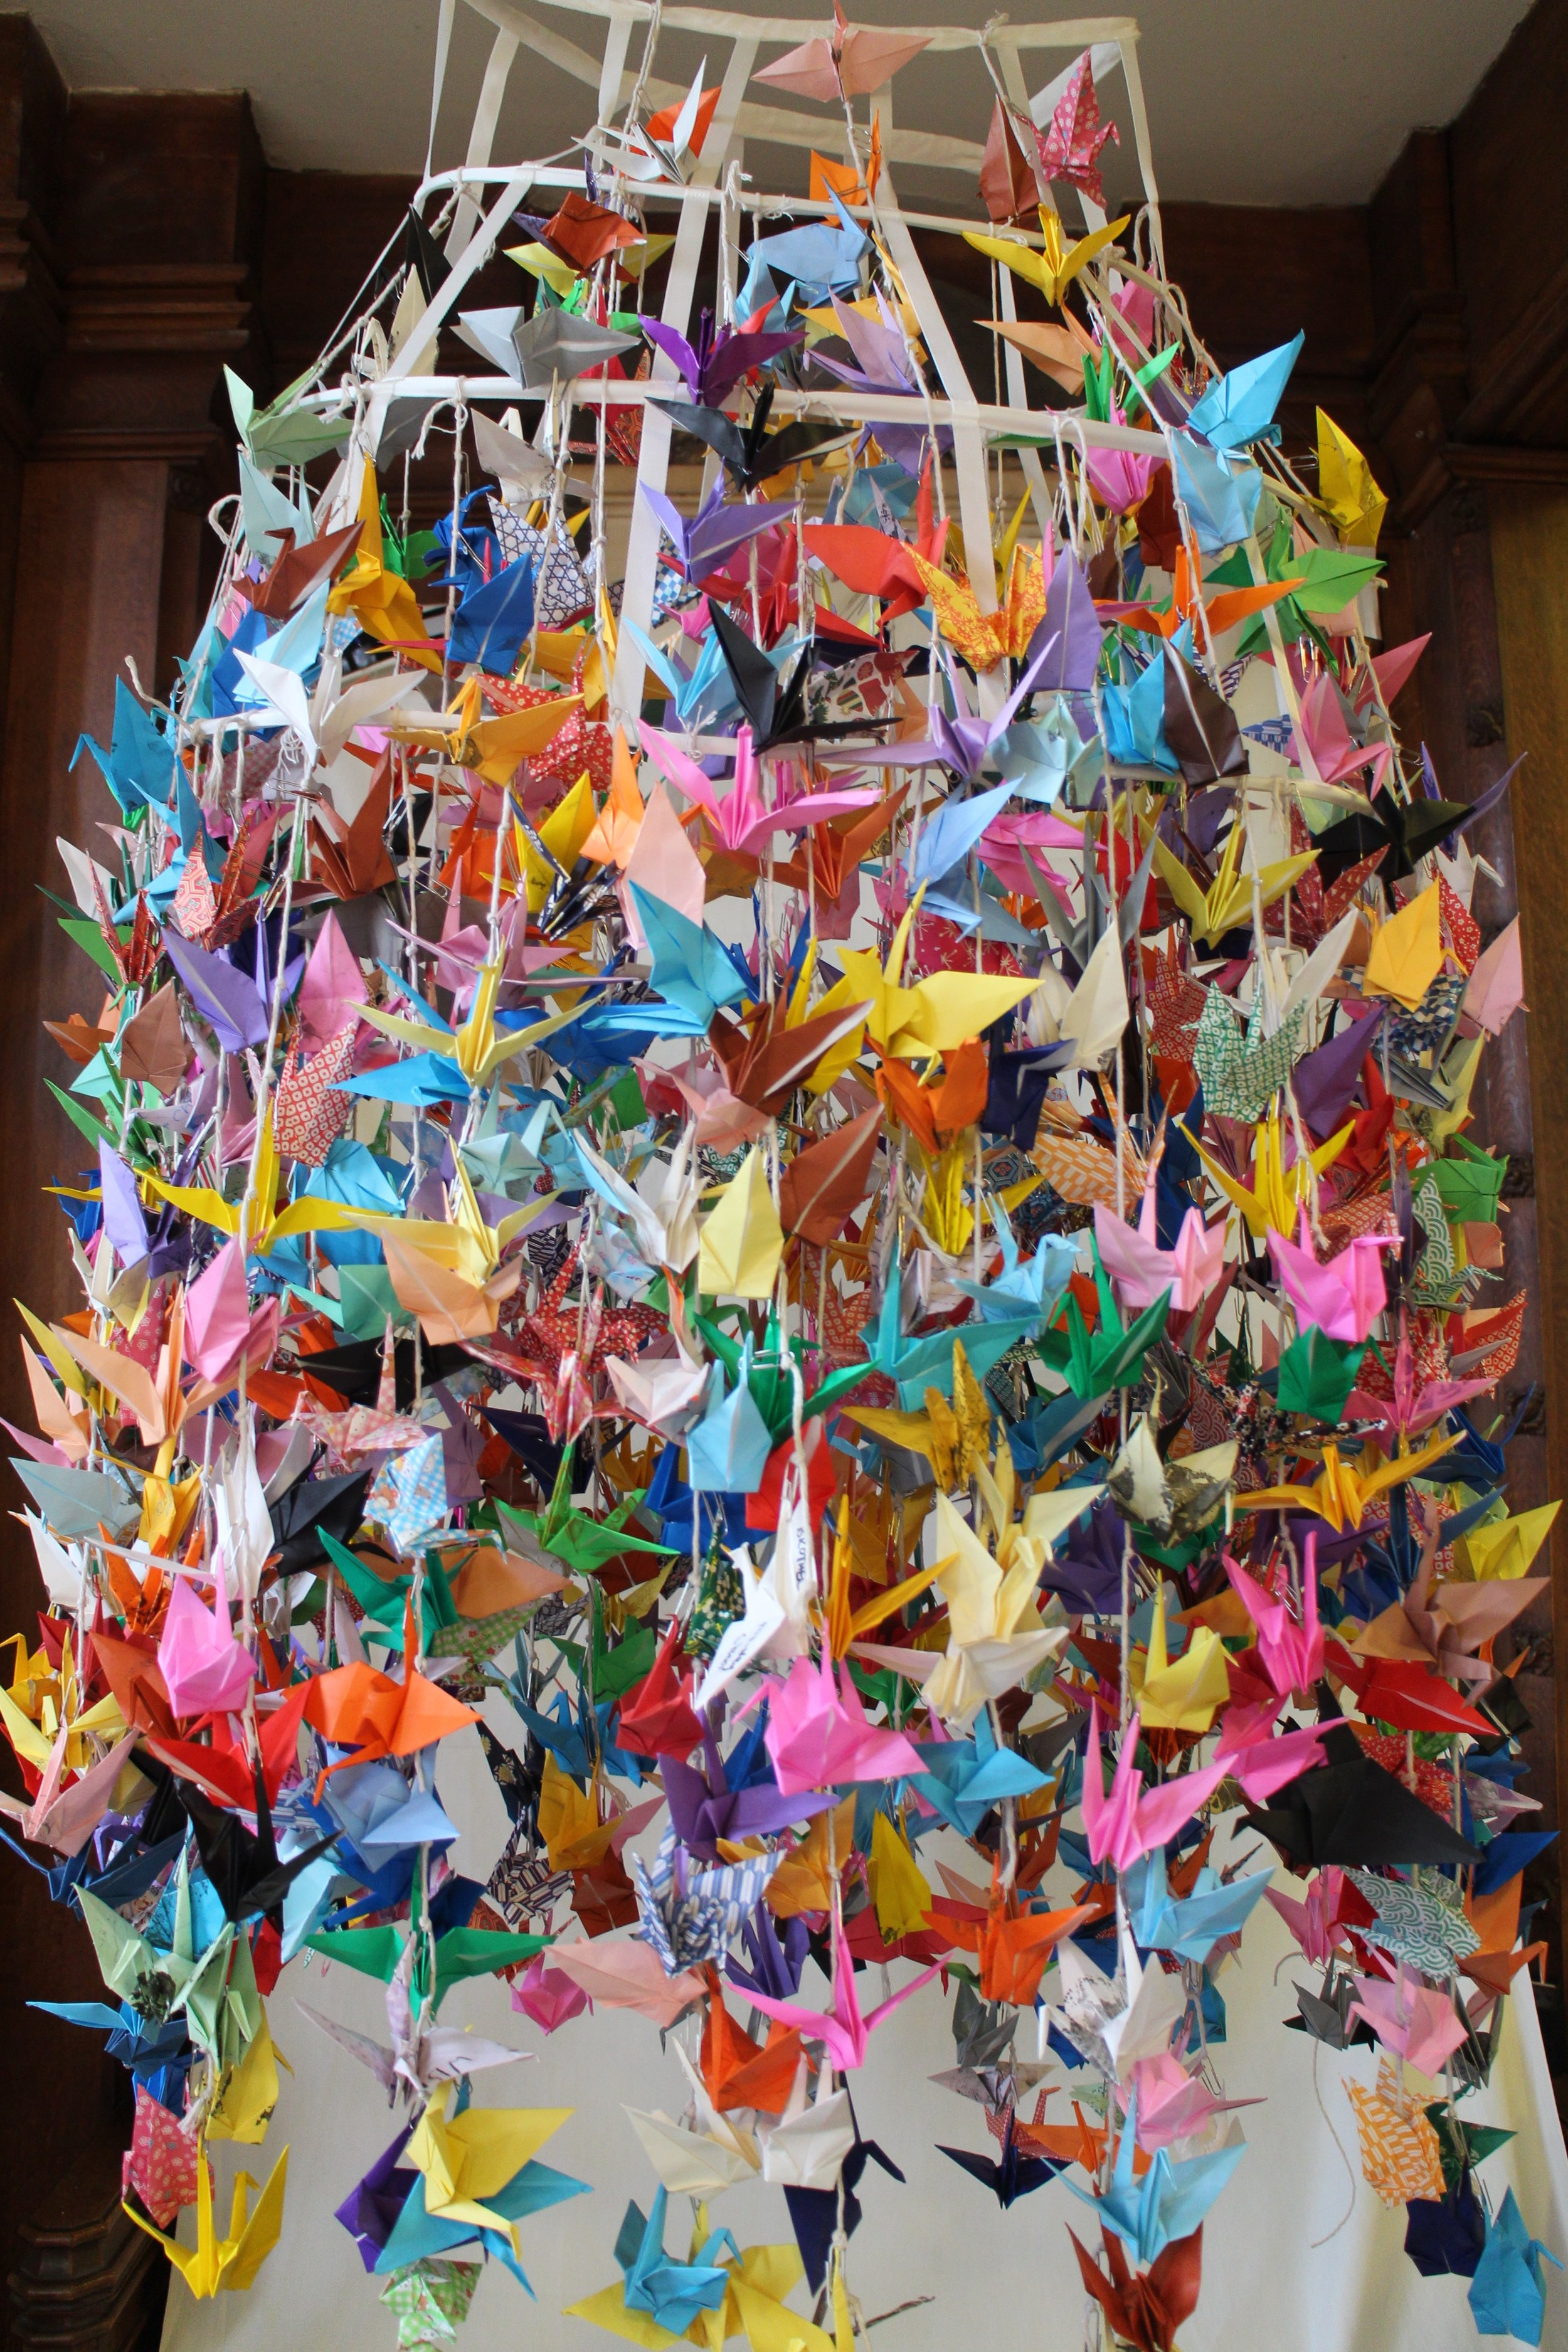 1000 cranes made by the public at St. Mary's church. All folded with wishes for 2017  hear the wishes here: https://youtu.be/sGcY2Zd3vys